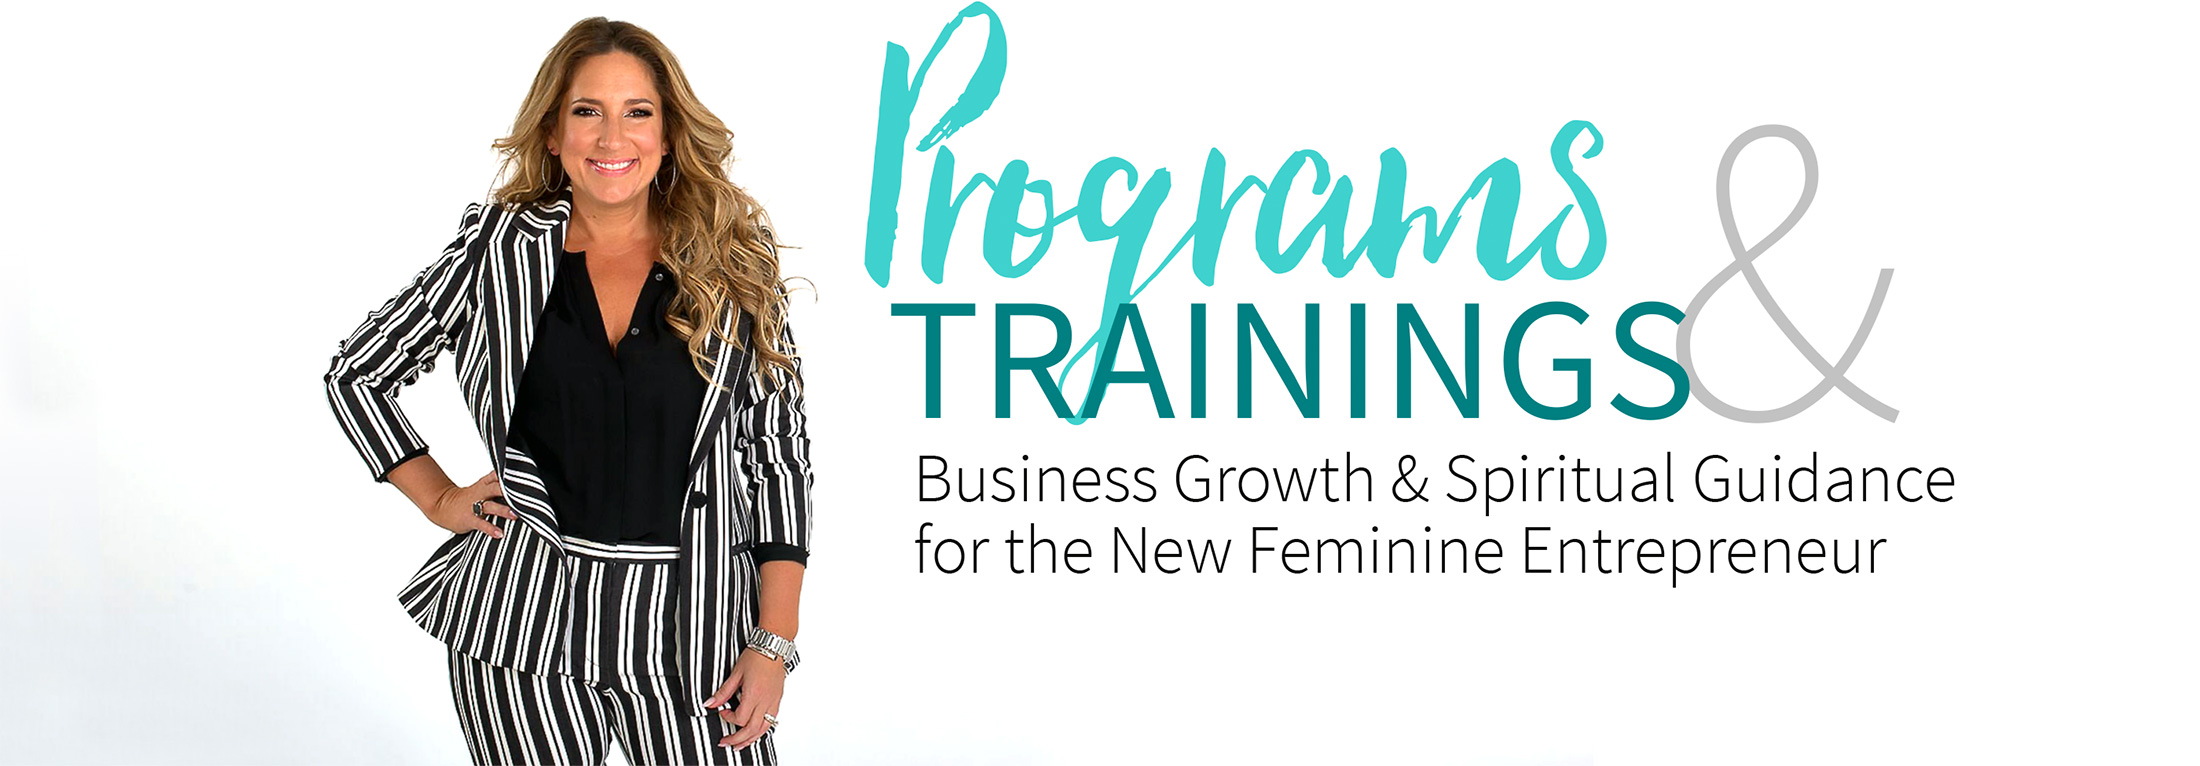 Mentorship & Training Programs by Gina DeVee